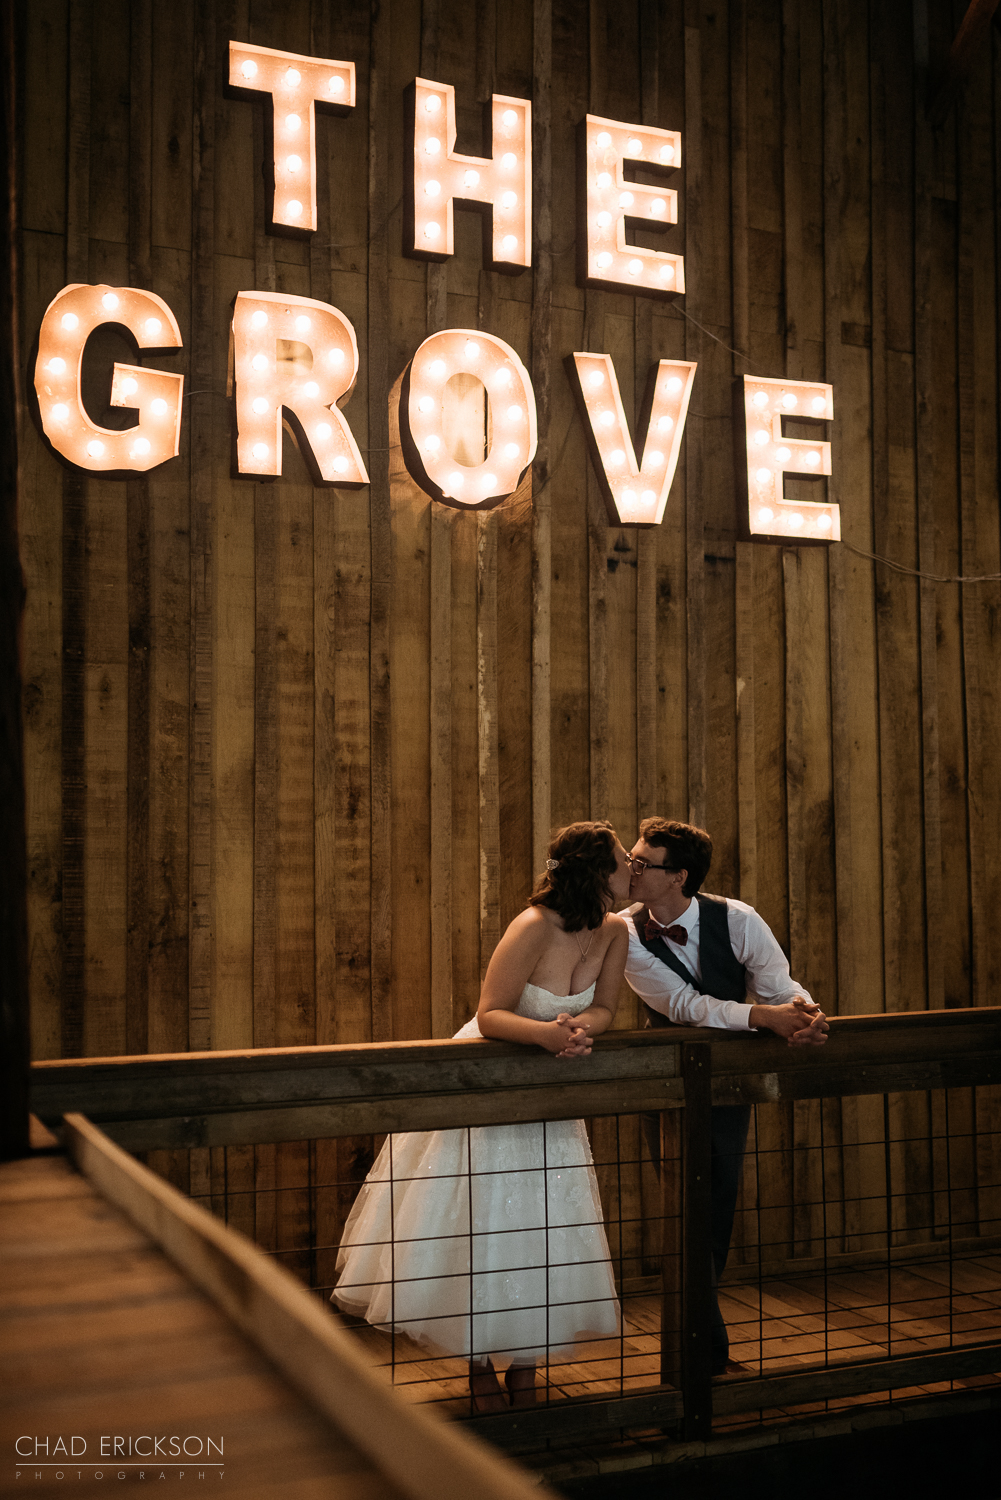 Bride and groom under The Grove sign